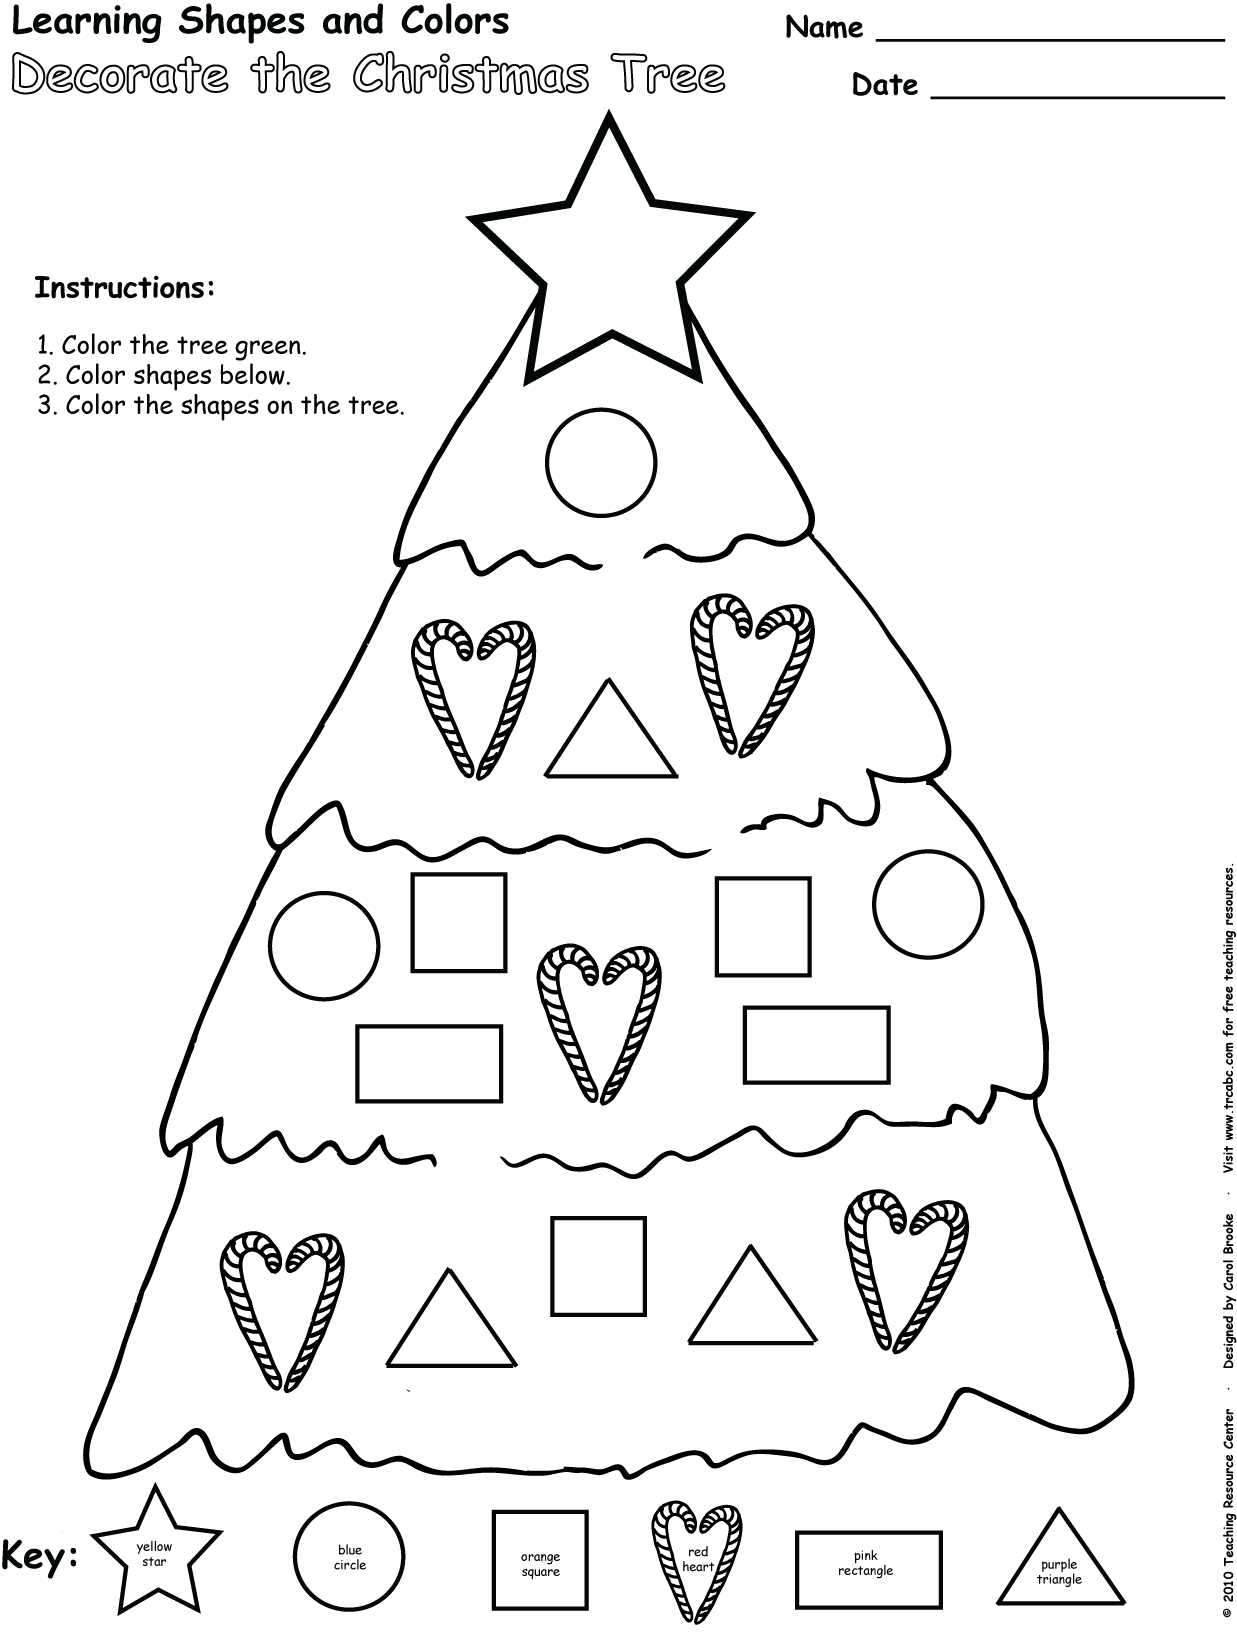 Colors Worksheets for Preschoolers Free Printables Along with Ciao Bambini 3 6 Anni